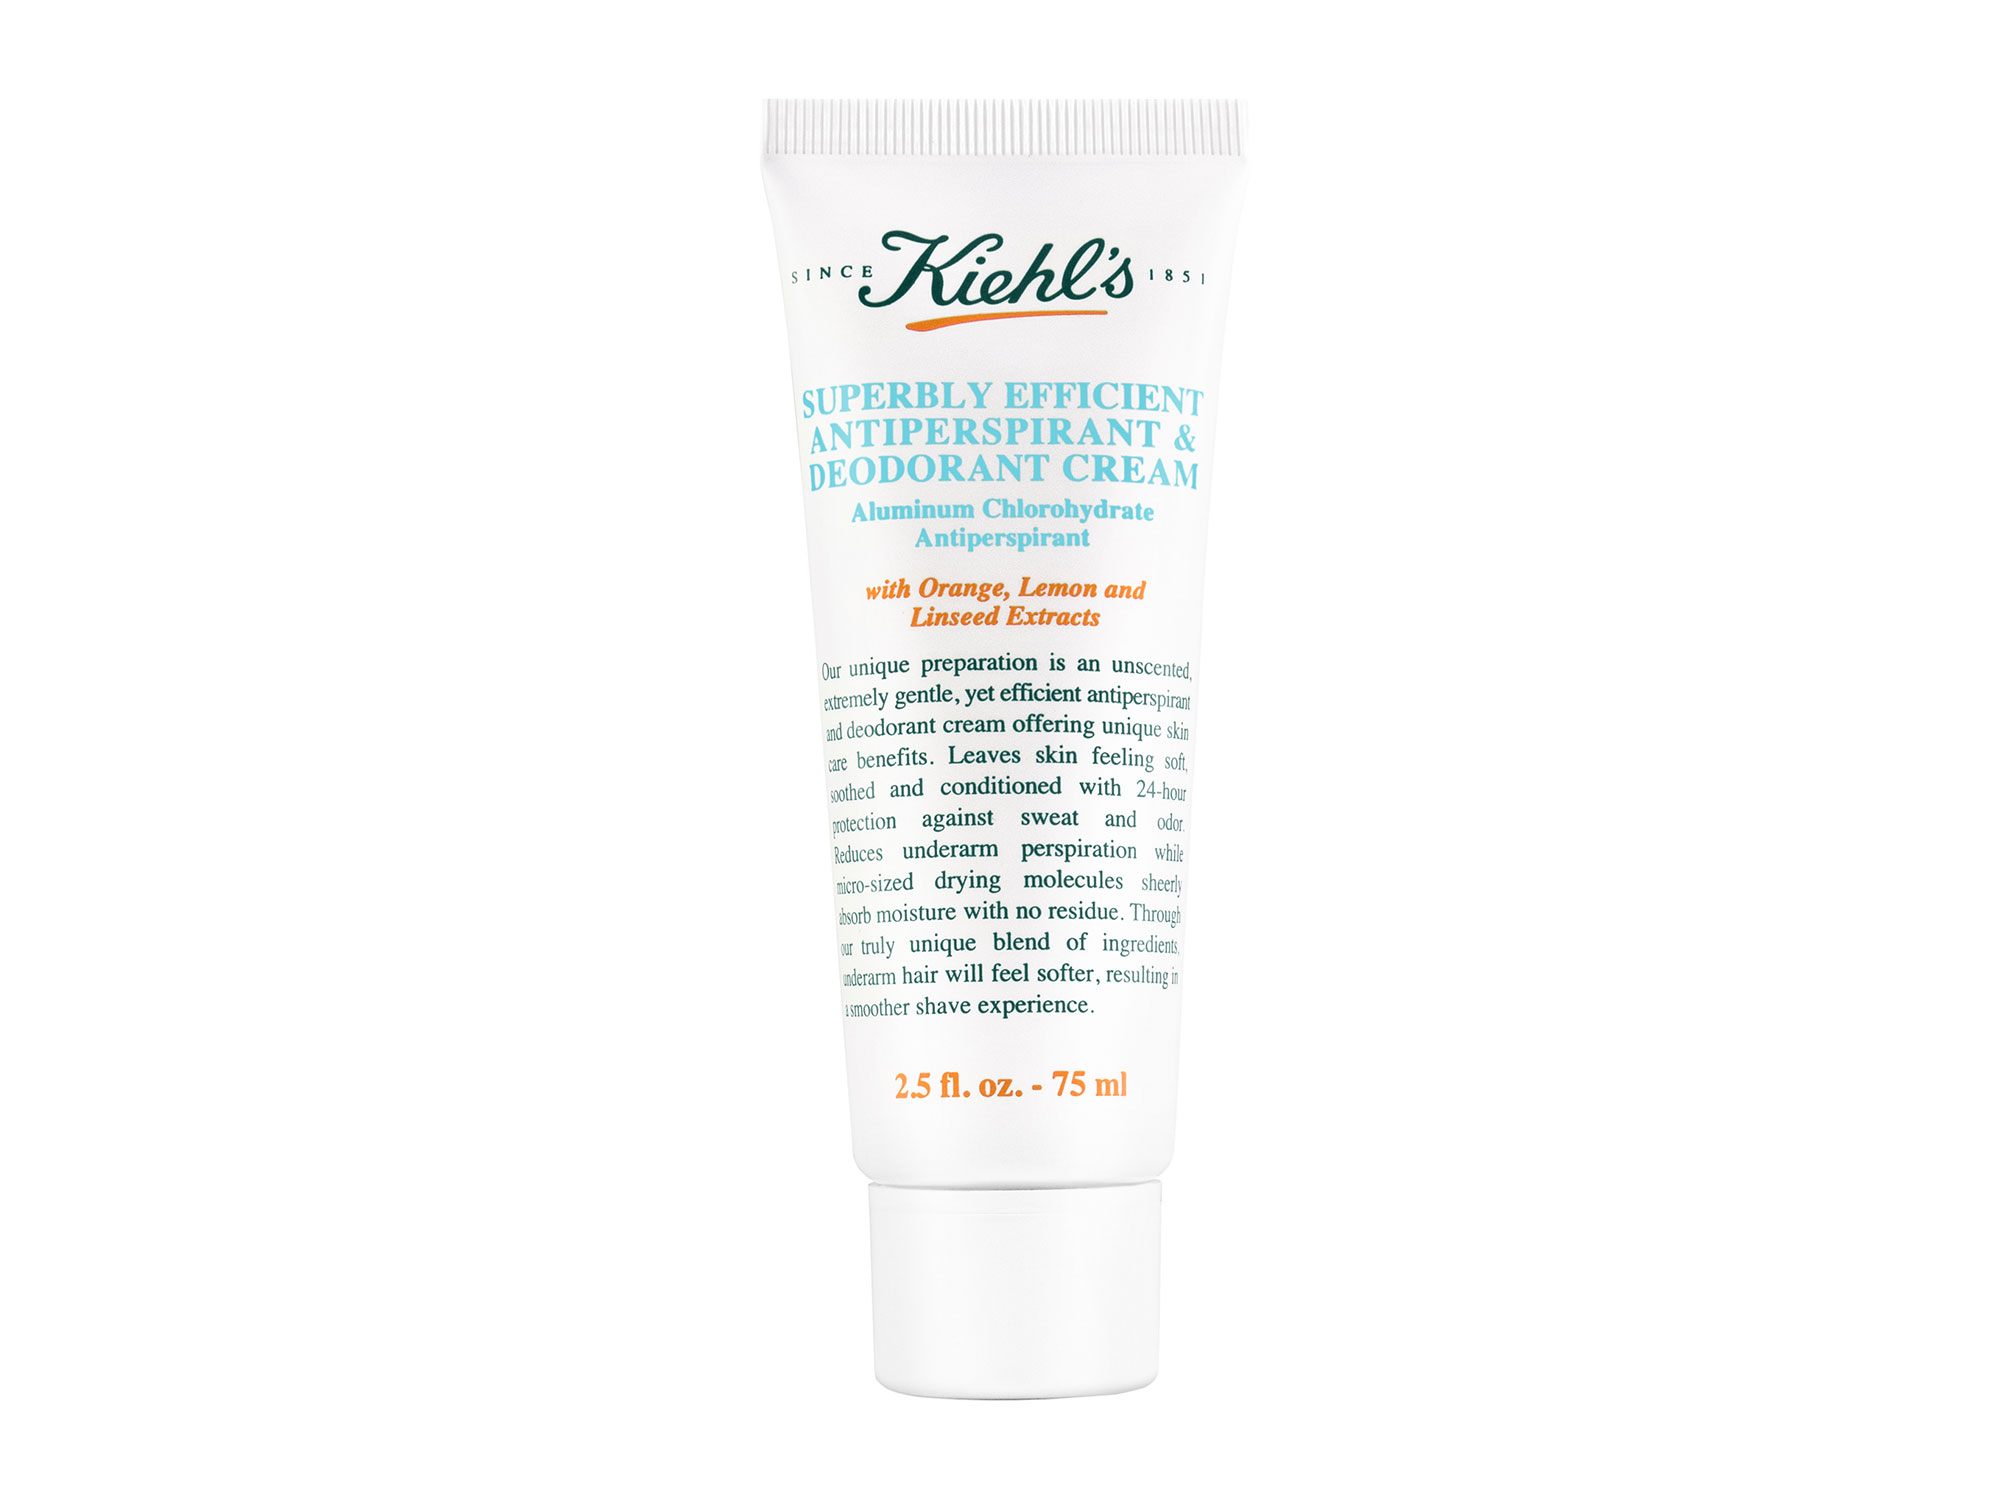 Kiehl's Superbly Efficient Antiperspirant & Deodorant Cream